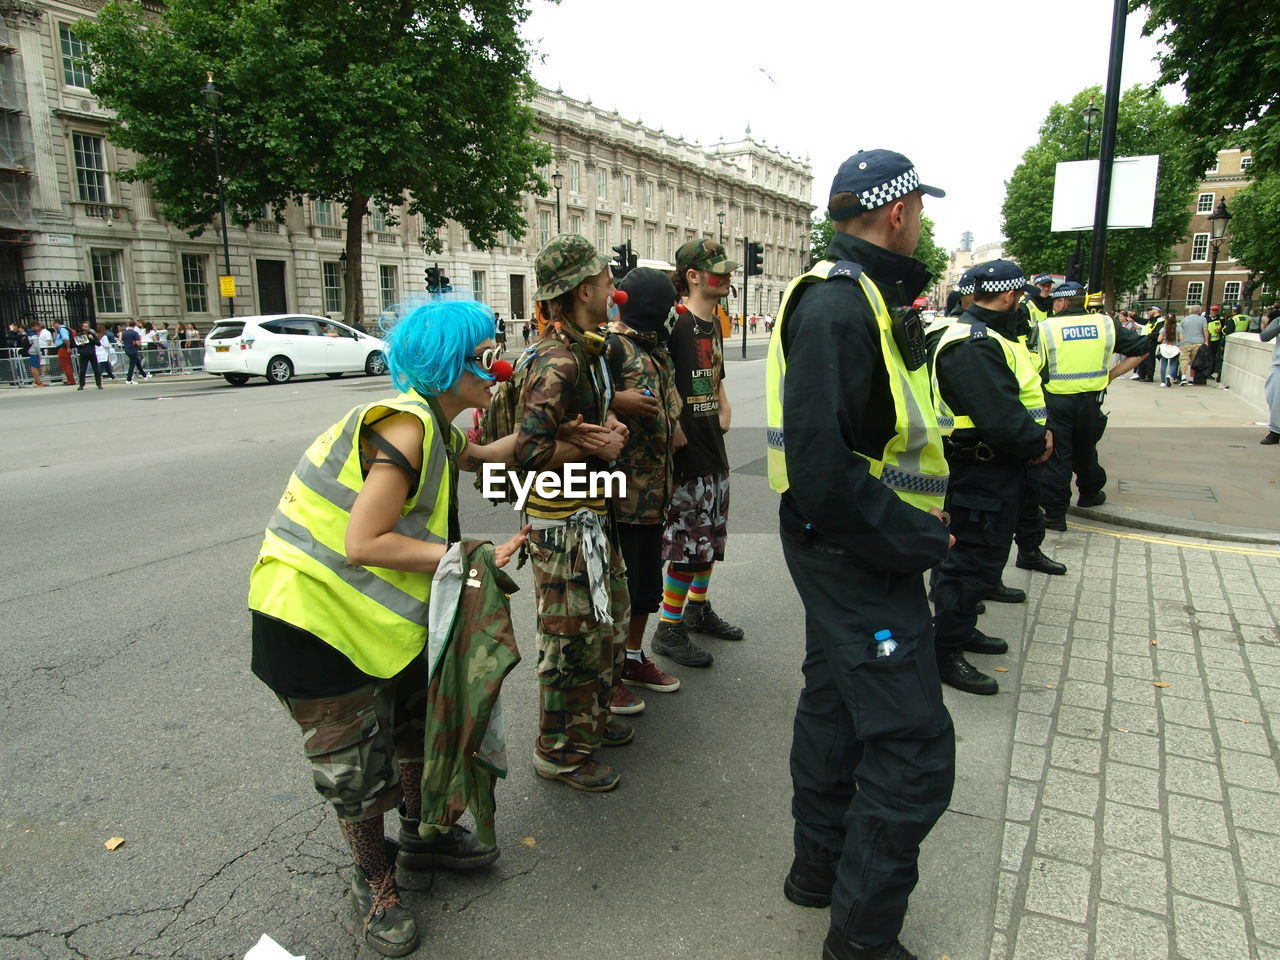 real people, building exterior, full length, street, men, reflective clothing, architecture, built structure, large group of people, walking, day, responsibility, women, city, helmet, outdoors, land vehicle, standing, road, togetherness, lifestyles, tree, police force, headwear, police uniform, hardhat, sky, adult, people